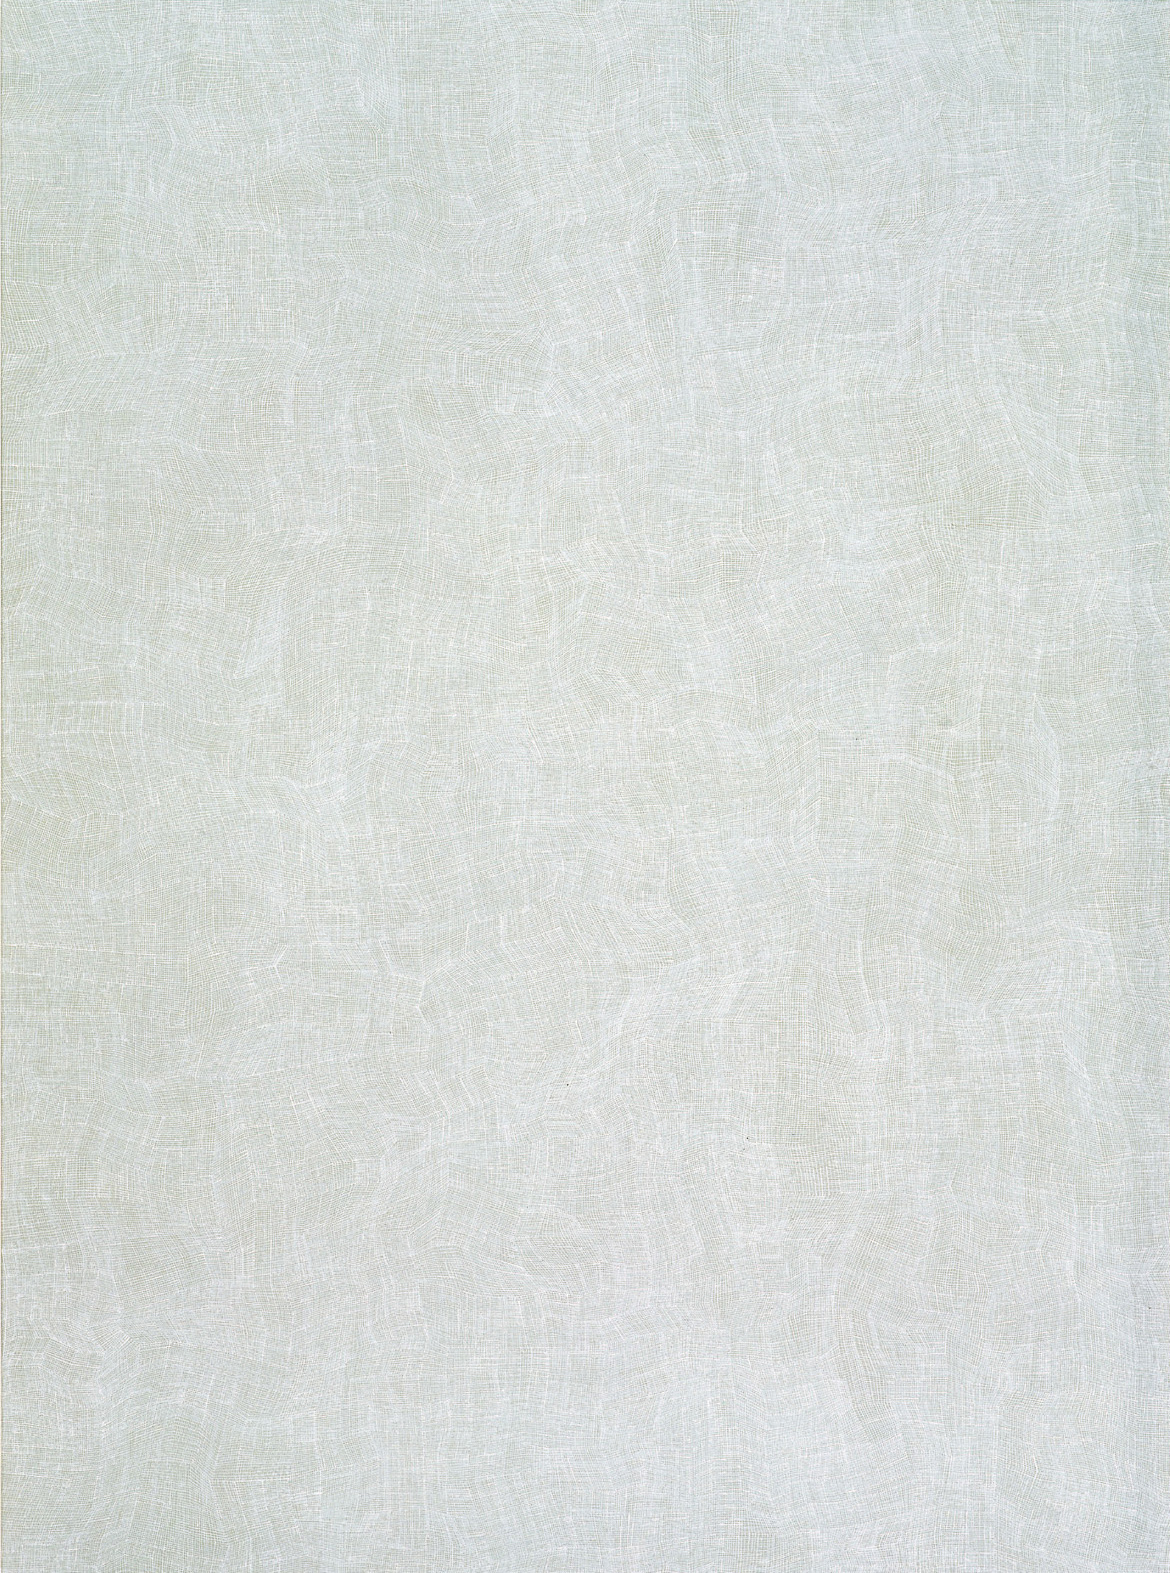 KARL WIEBKE  26-03 White on Grey , 2003 acrylic on Belgian linen 173 x 128 cm